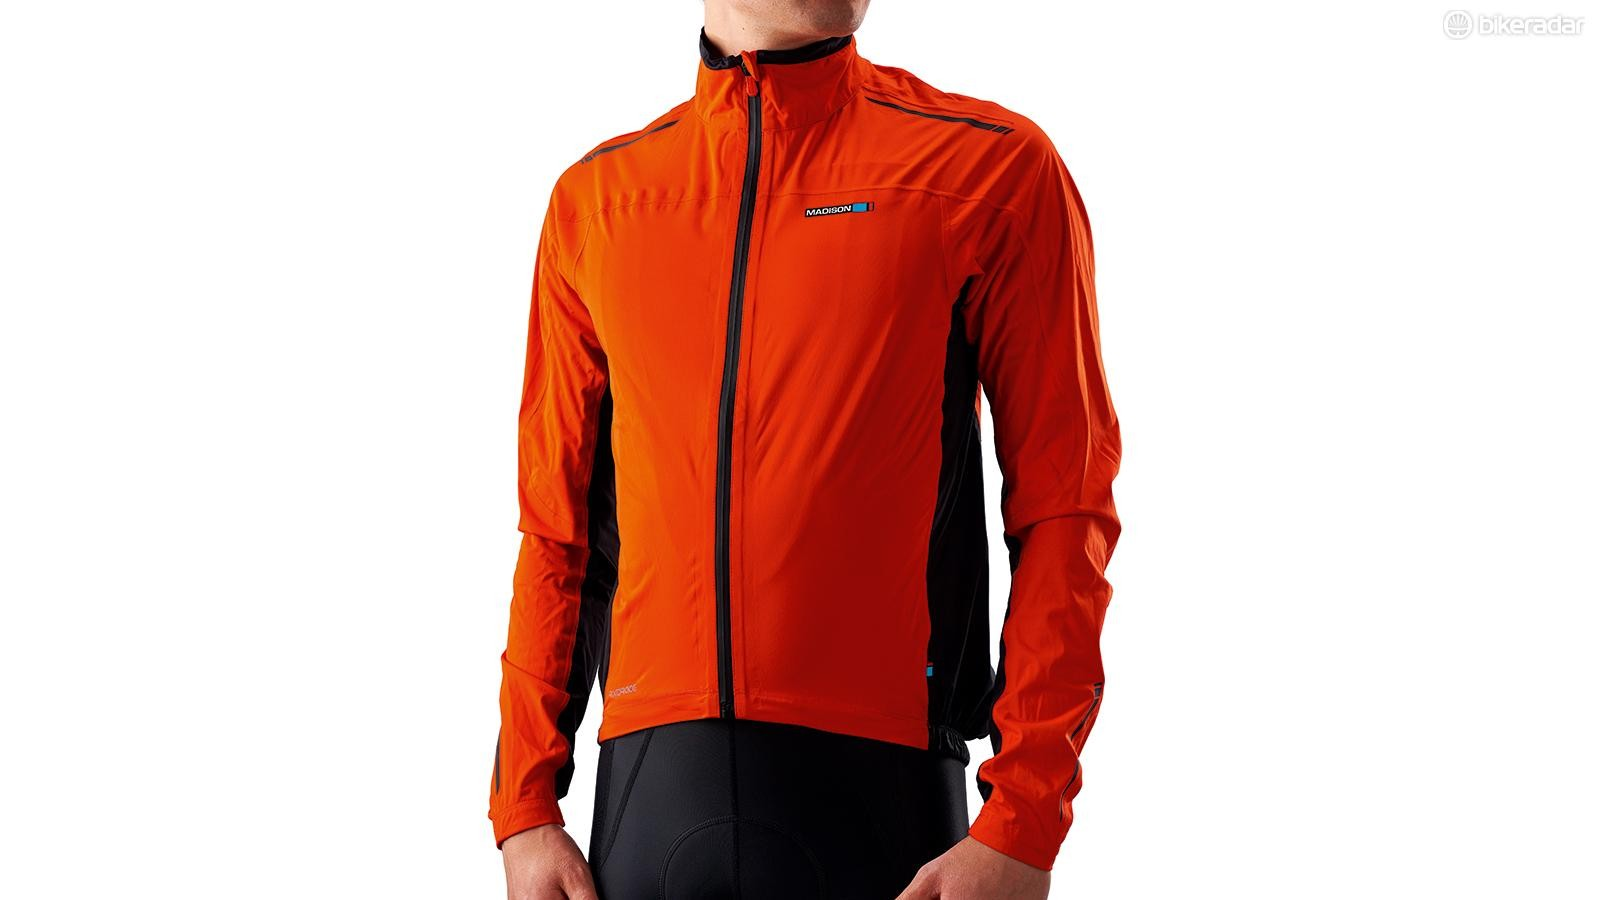 The best waterproof jackets for cycling in 2019 | Best breathable